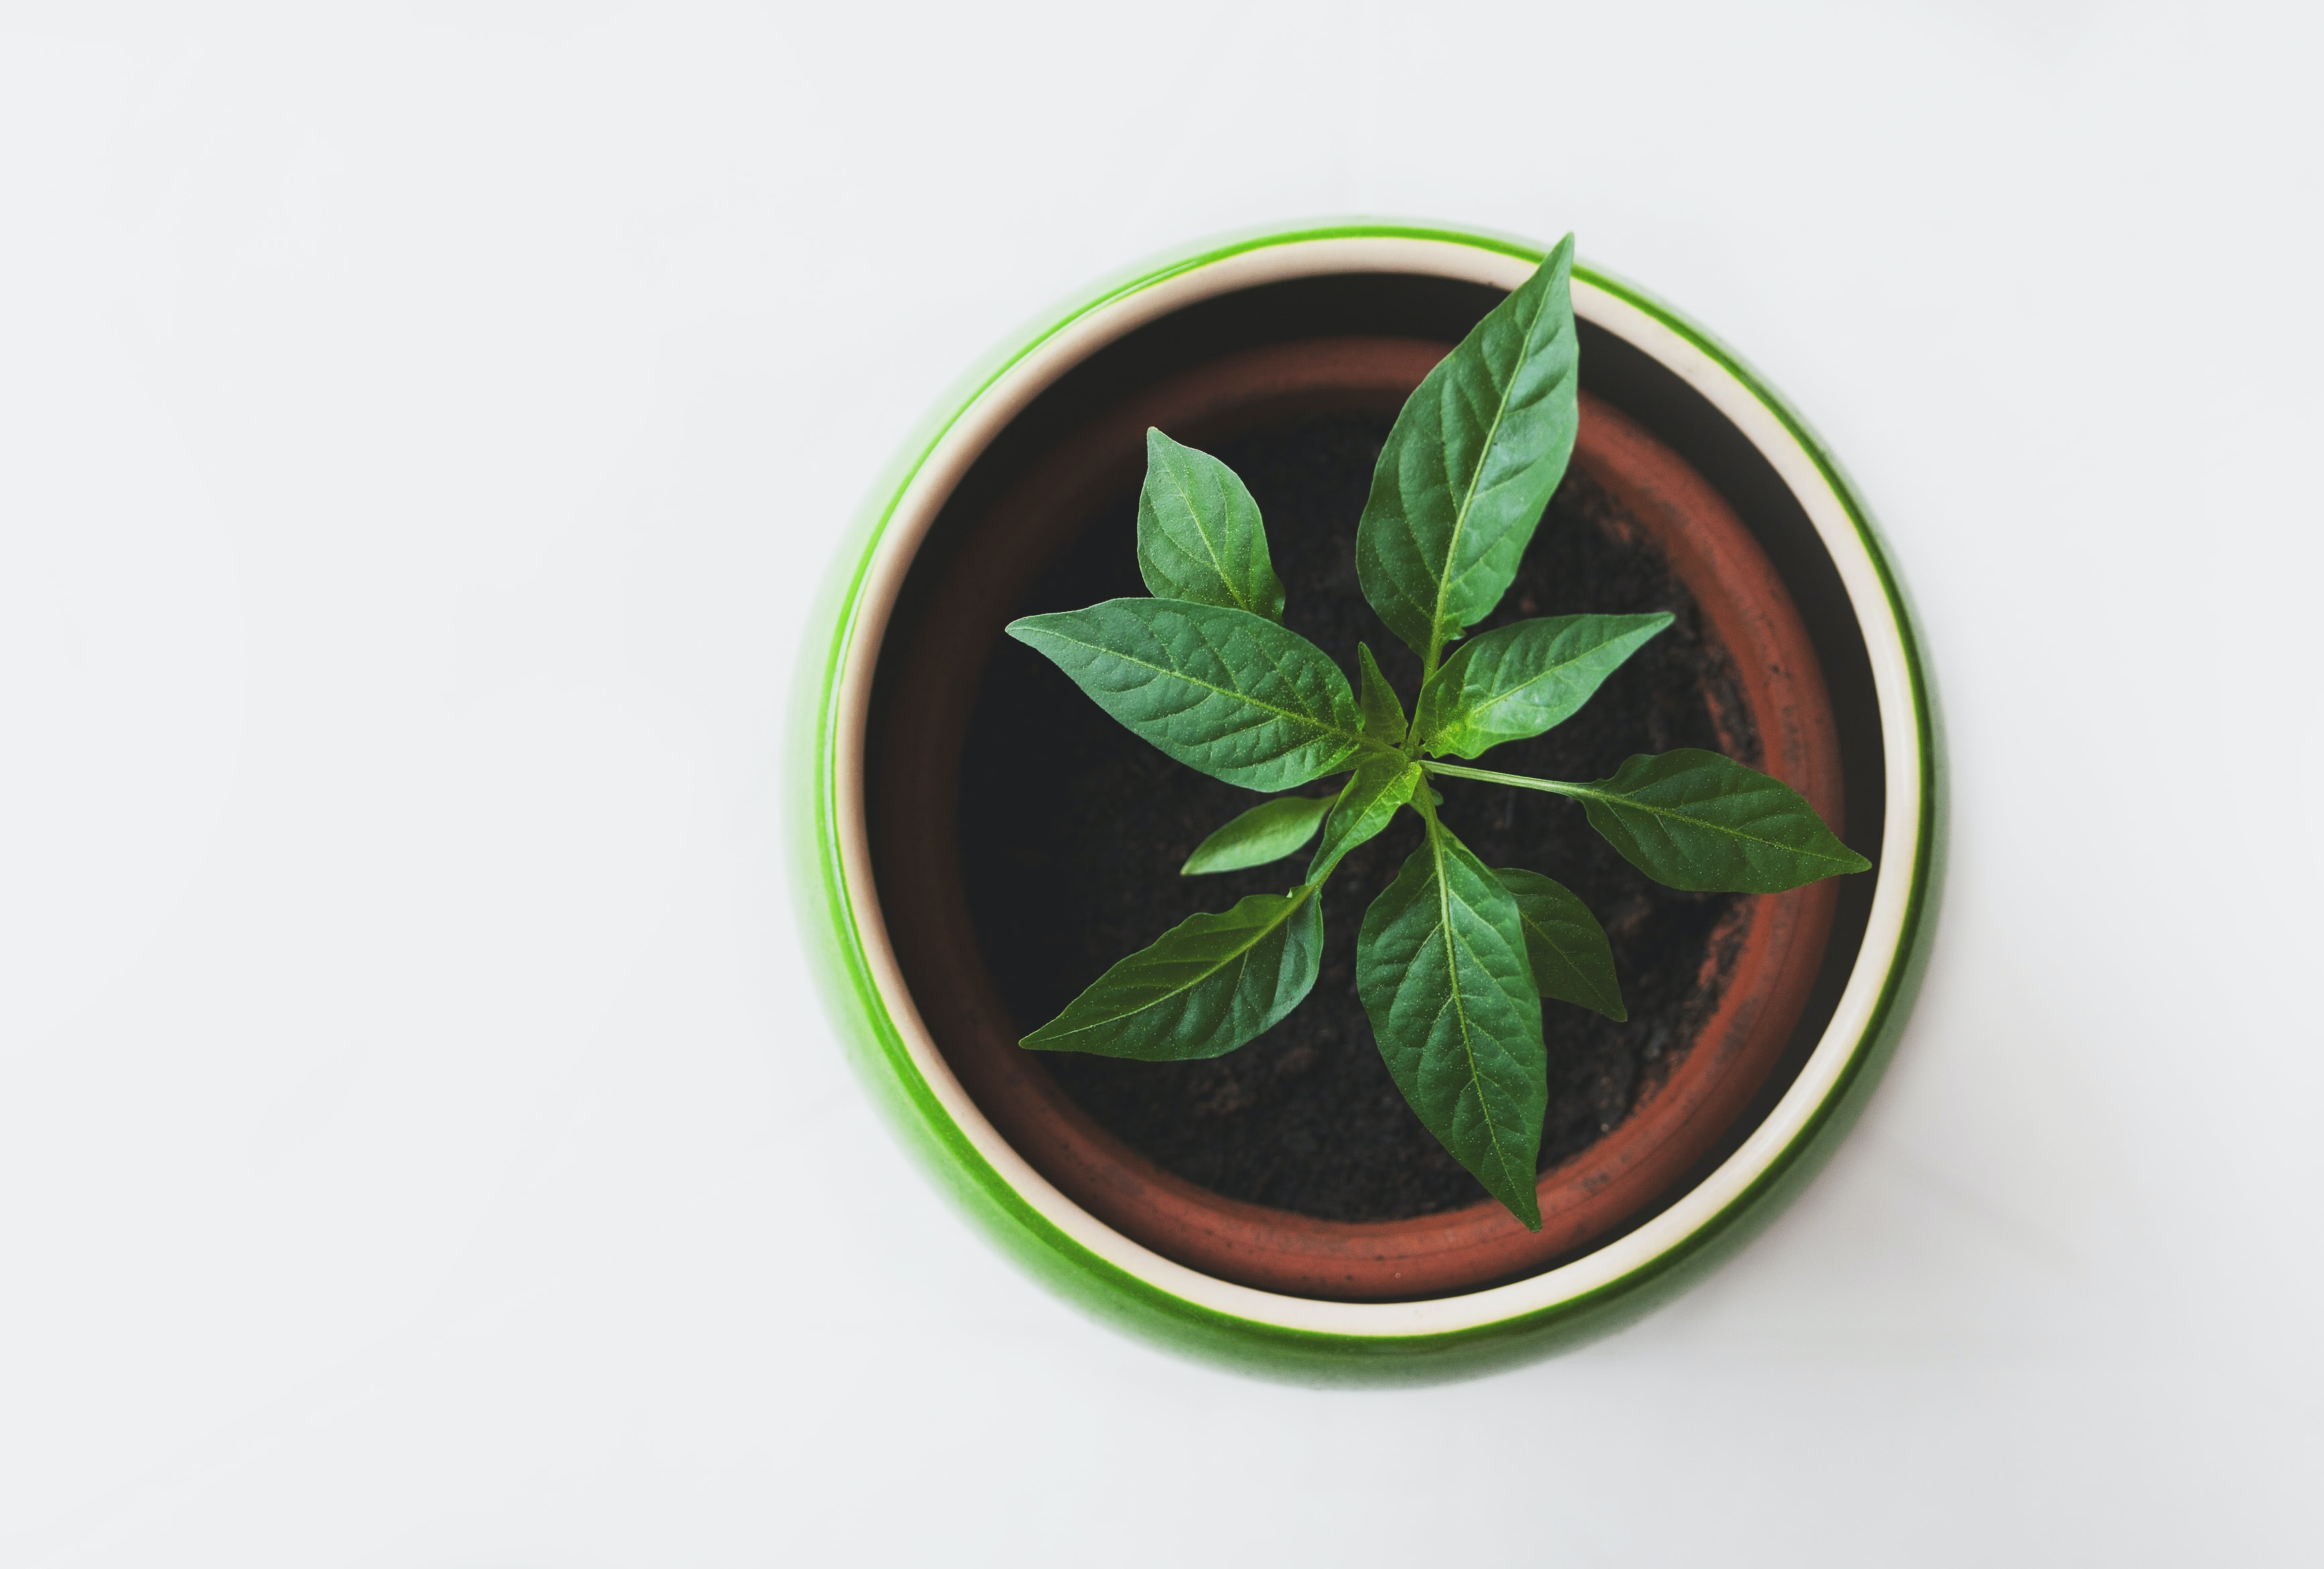 Overhead shot of a green potted plant on a white surface